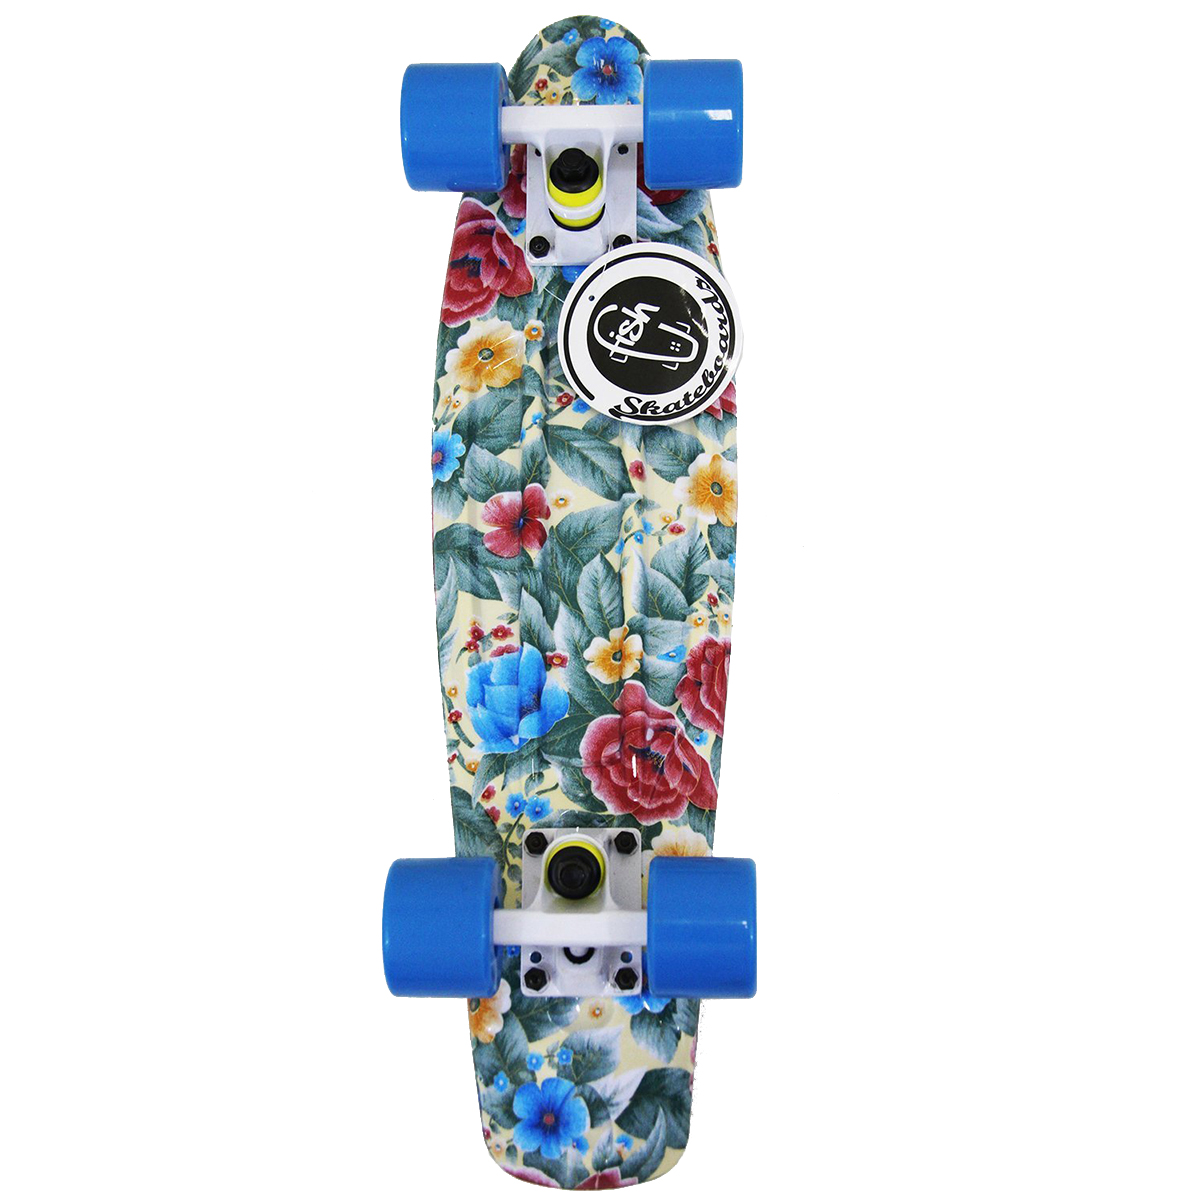 "Fish Skateboard Floral Plastic 22"" Retro Cruiser Beach Sidewalk"